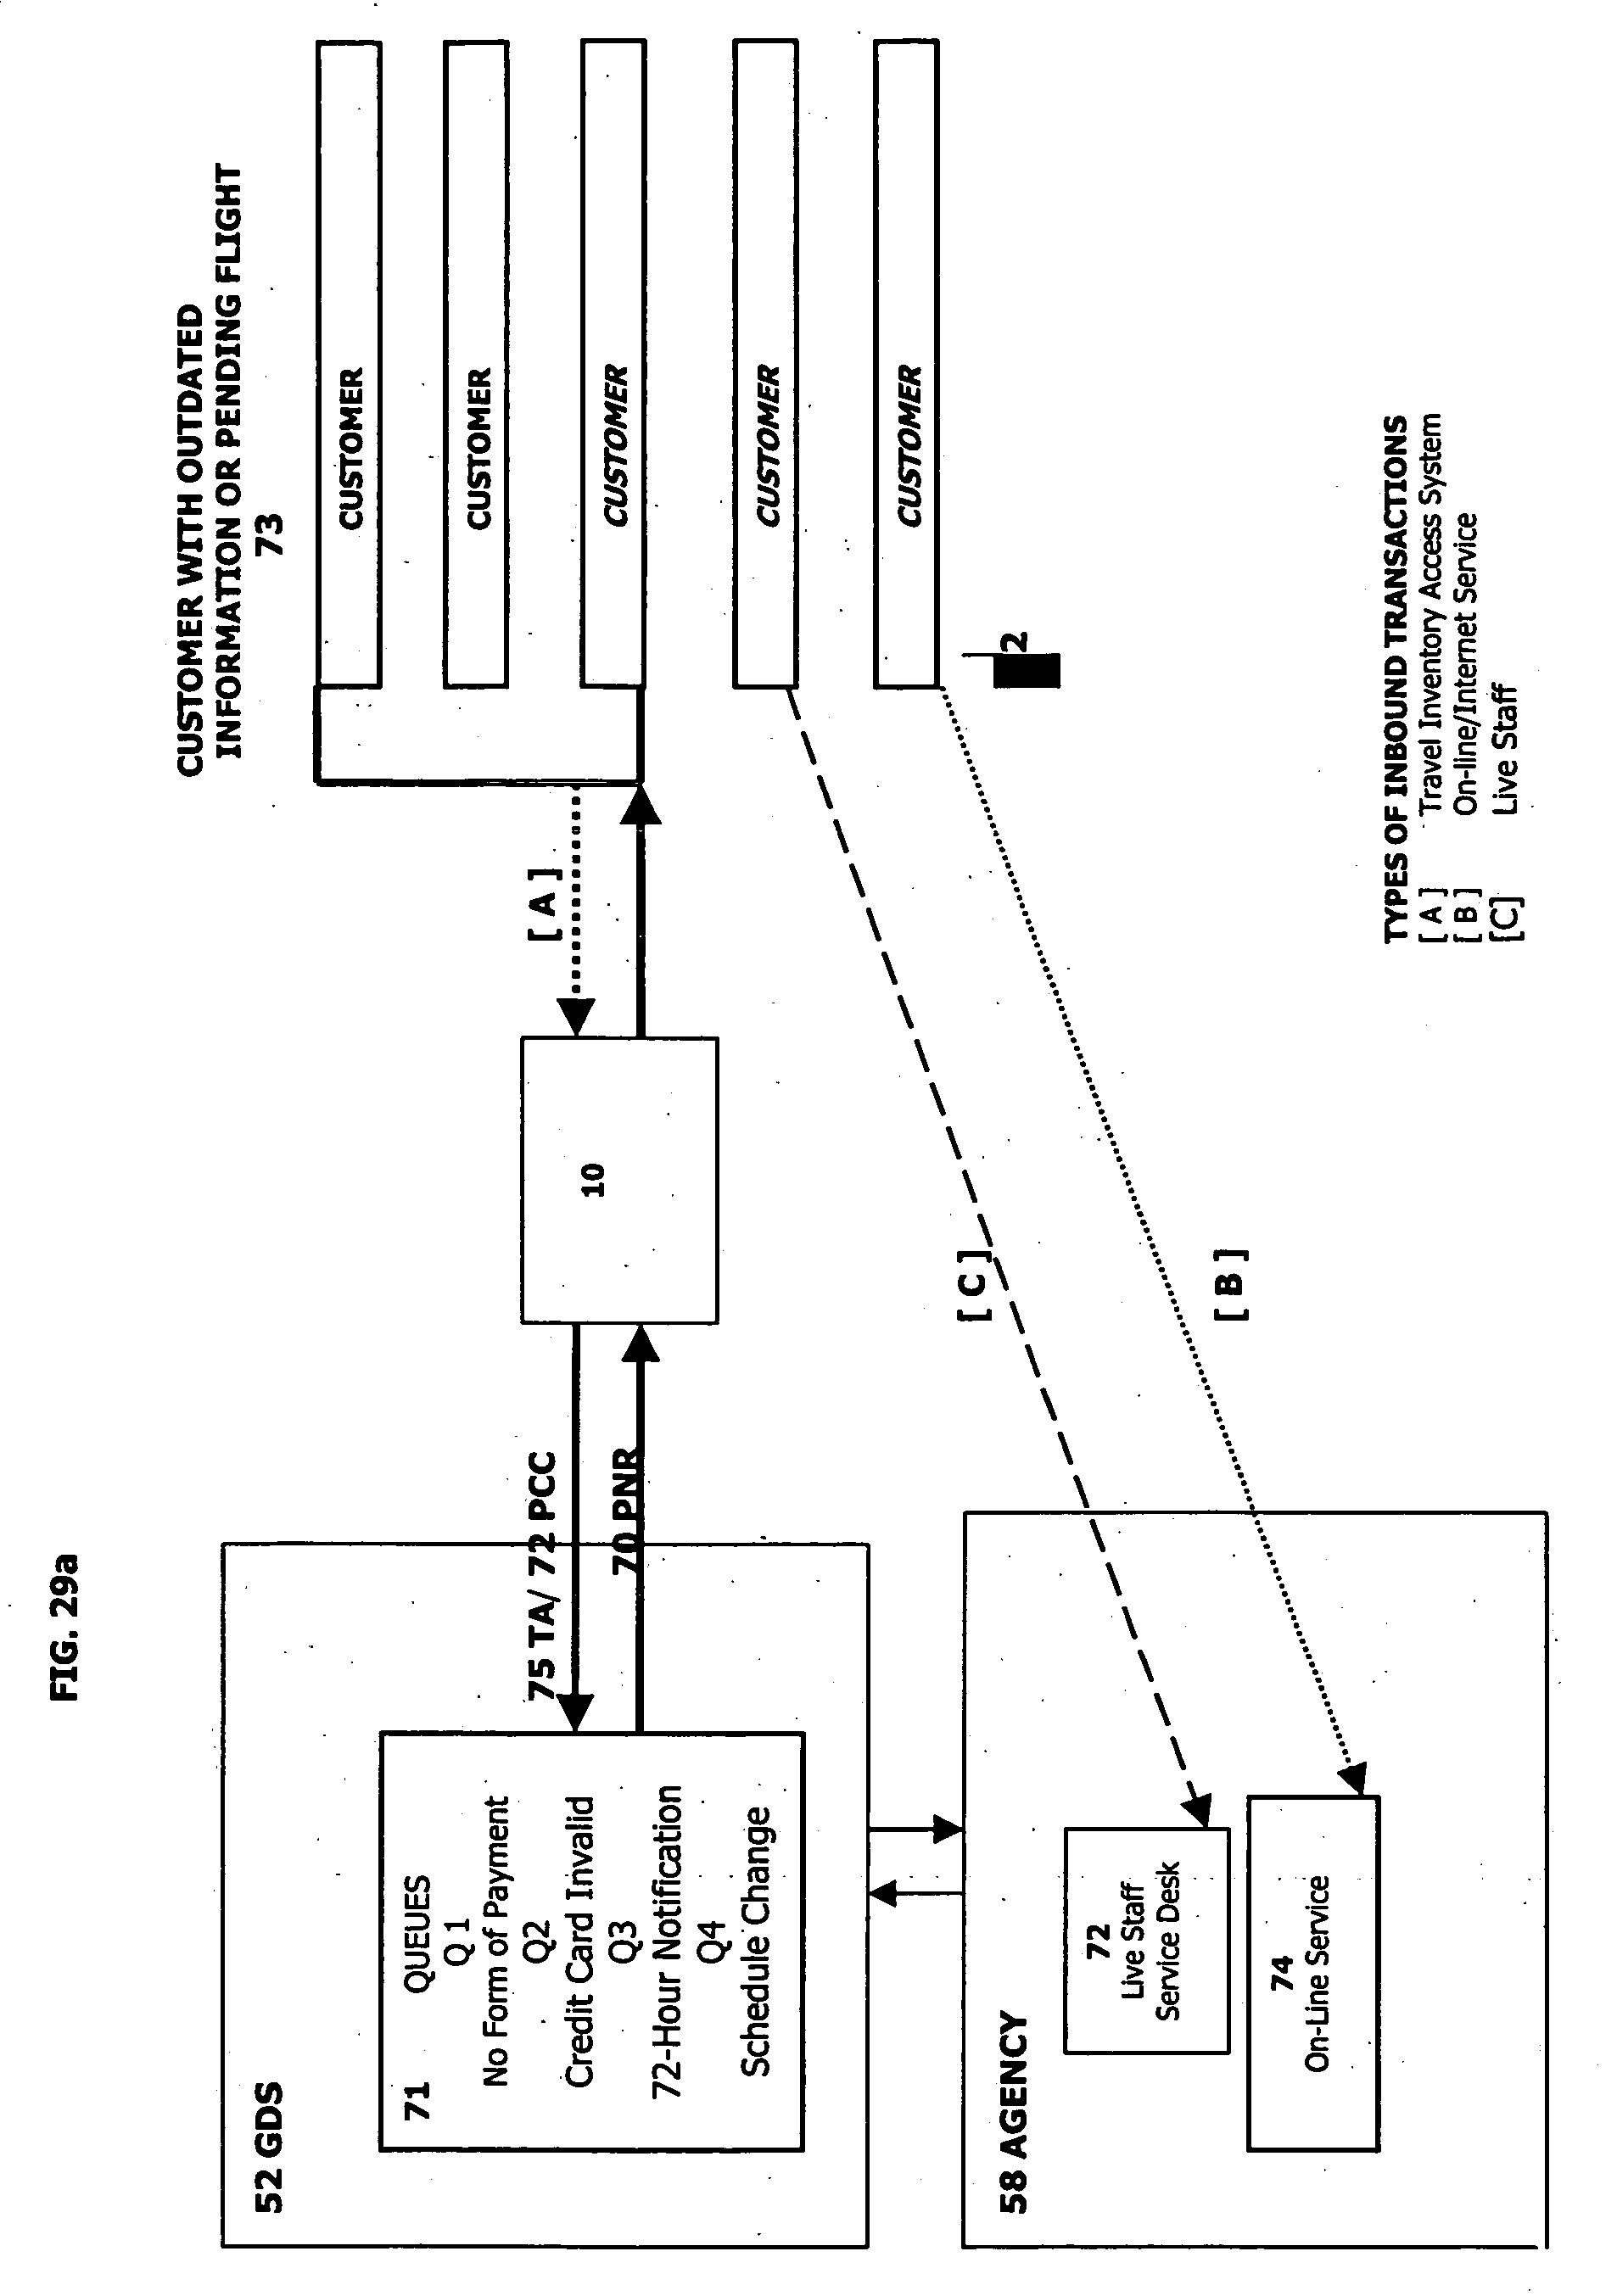 synthesis inventory system Inventory or material balance control is an important part of process  system  design and performance evaluation for ammonia synthesis.